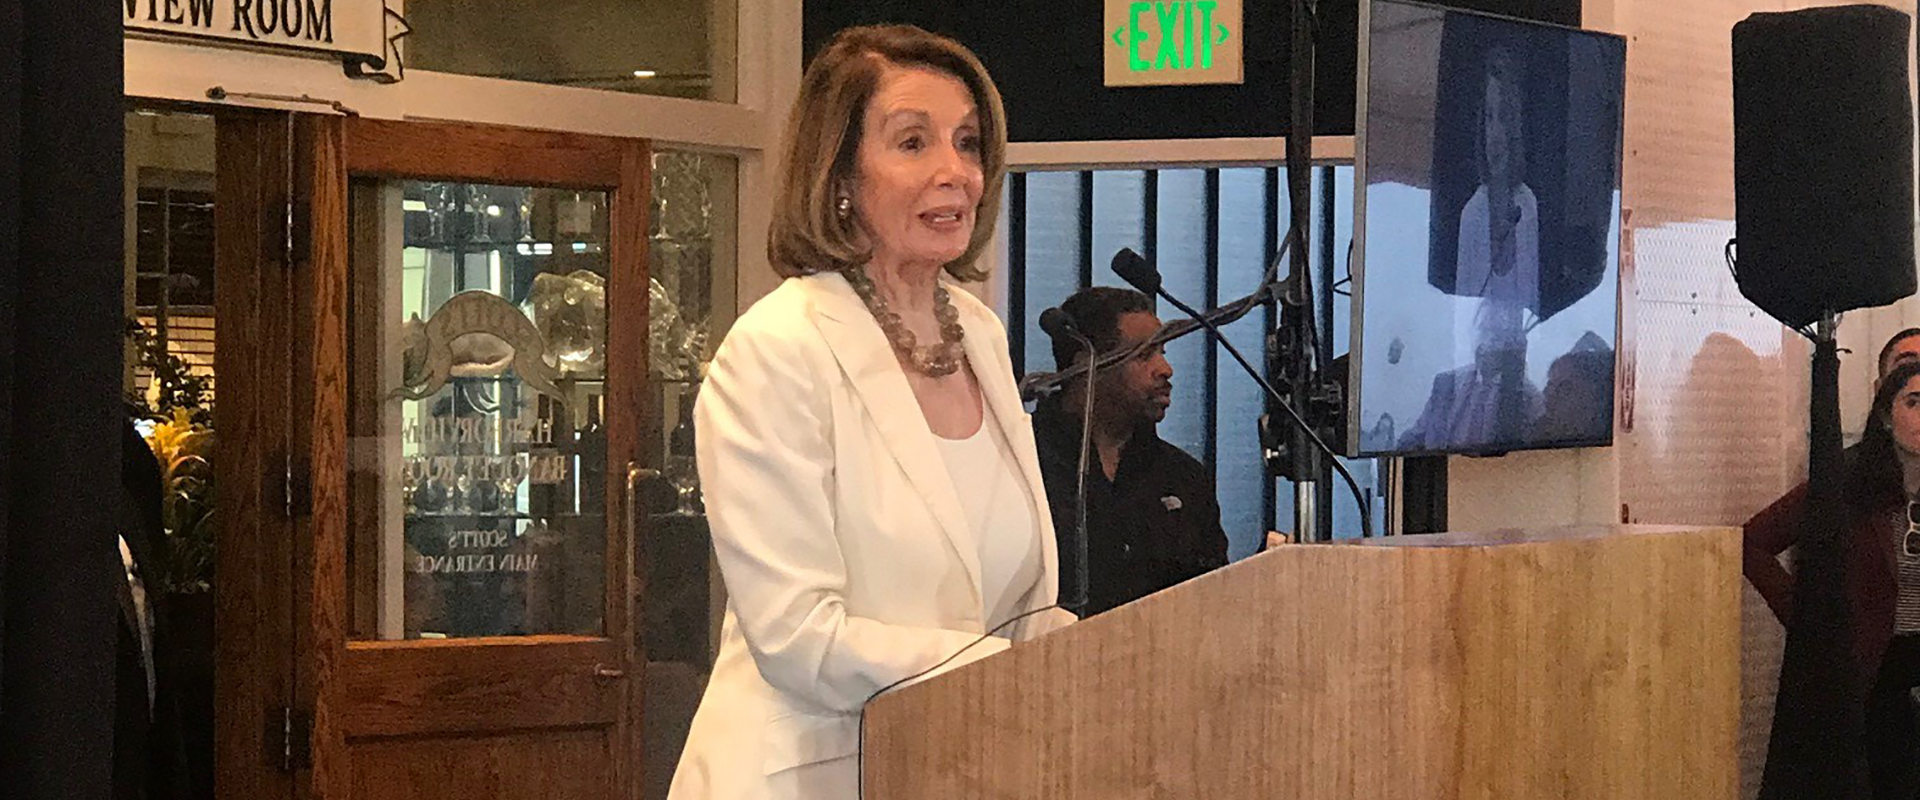 Congresswoman Pelosi delivers remarks in Oakland at the funeral of the late Ron Dellums, honoring the former Oakland Mayor and 13-term Bay Area Member of Congress and Committee Chairman.